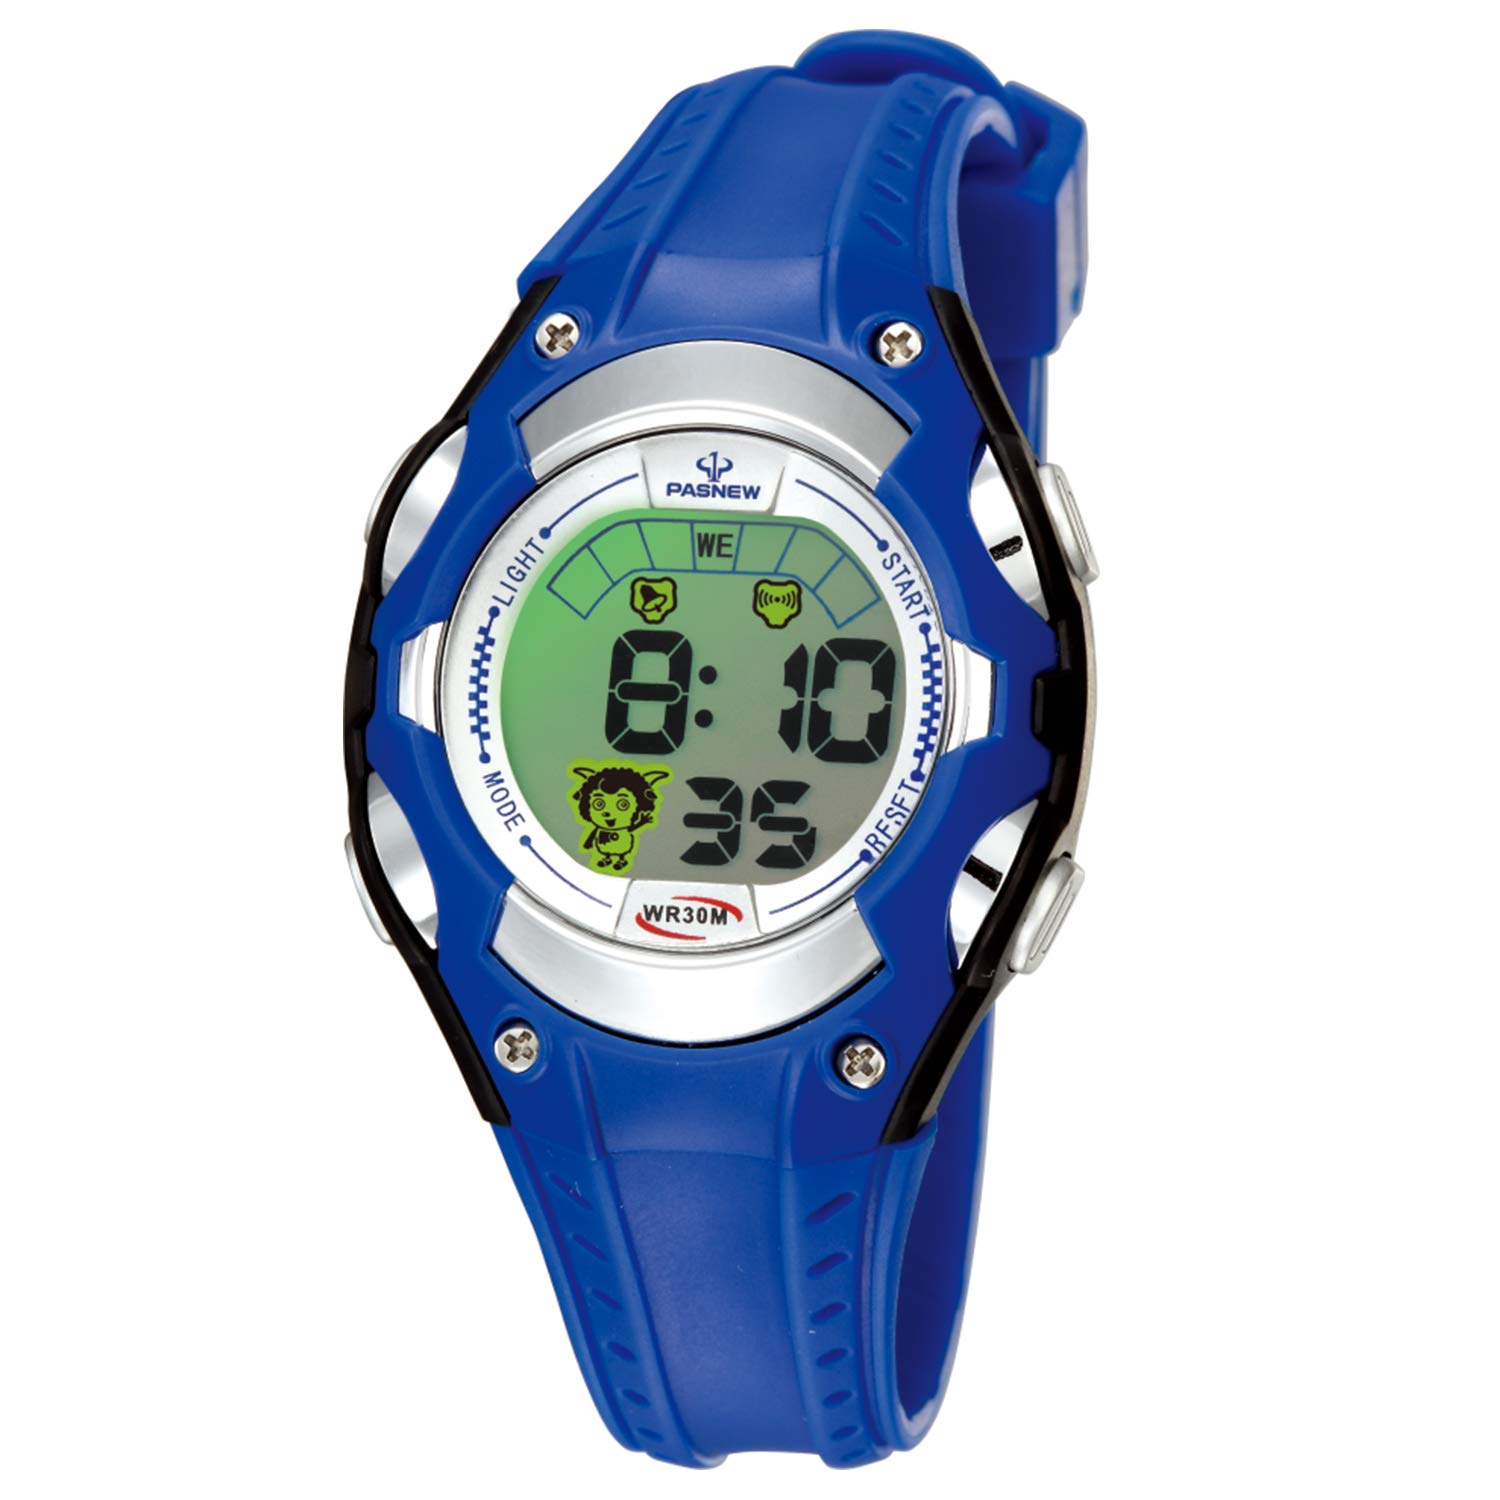 Boys Watches for Kids Sports Running Riding Swimming Climbing Durable Comfortable Multifunction 7 Colors Light LED Waterproof Digital Watch Gift for Boys Age 4-12 328bk